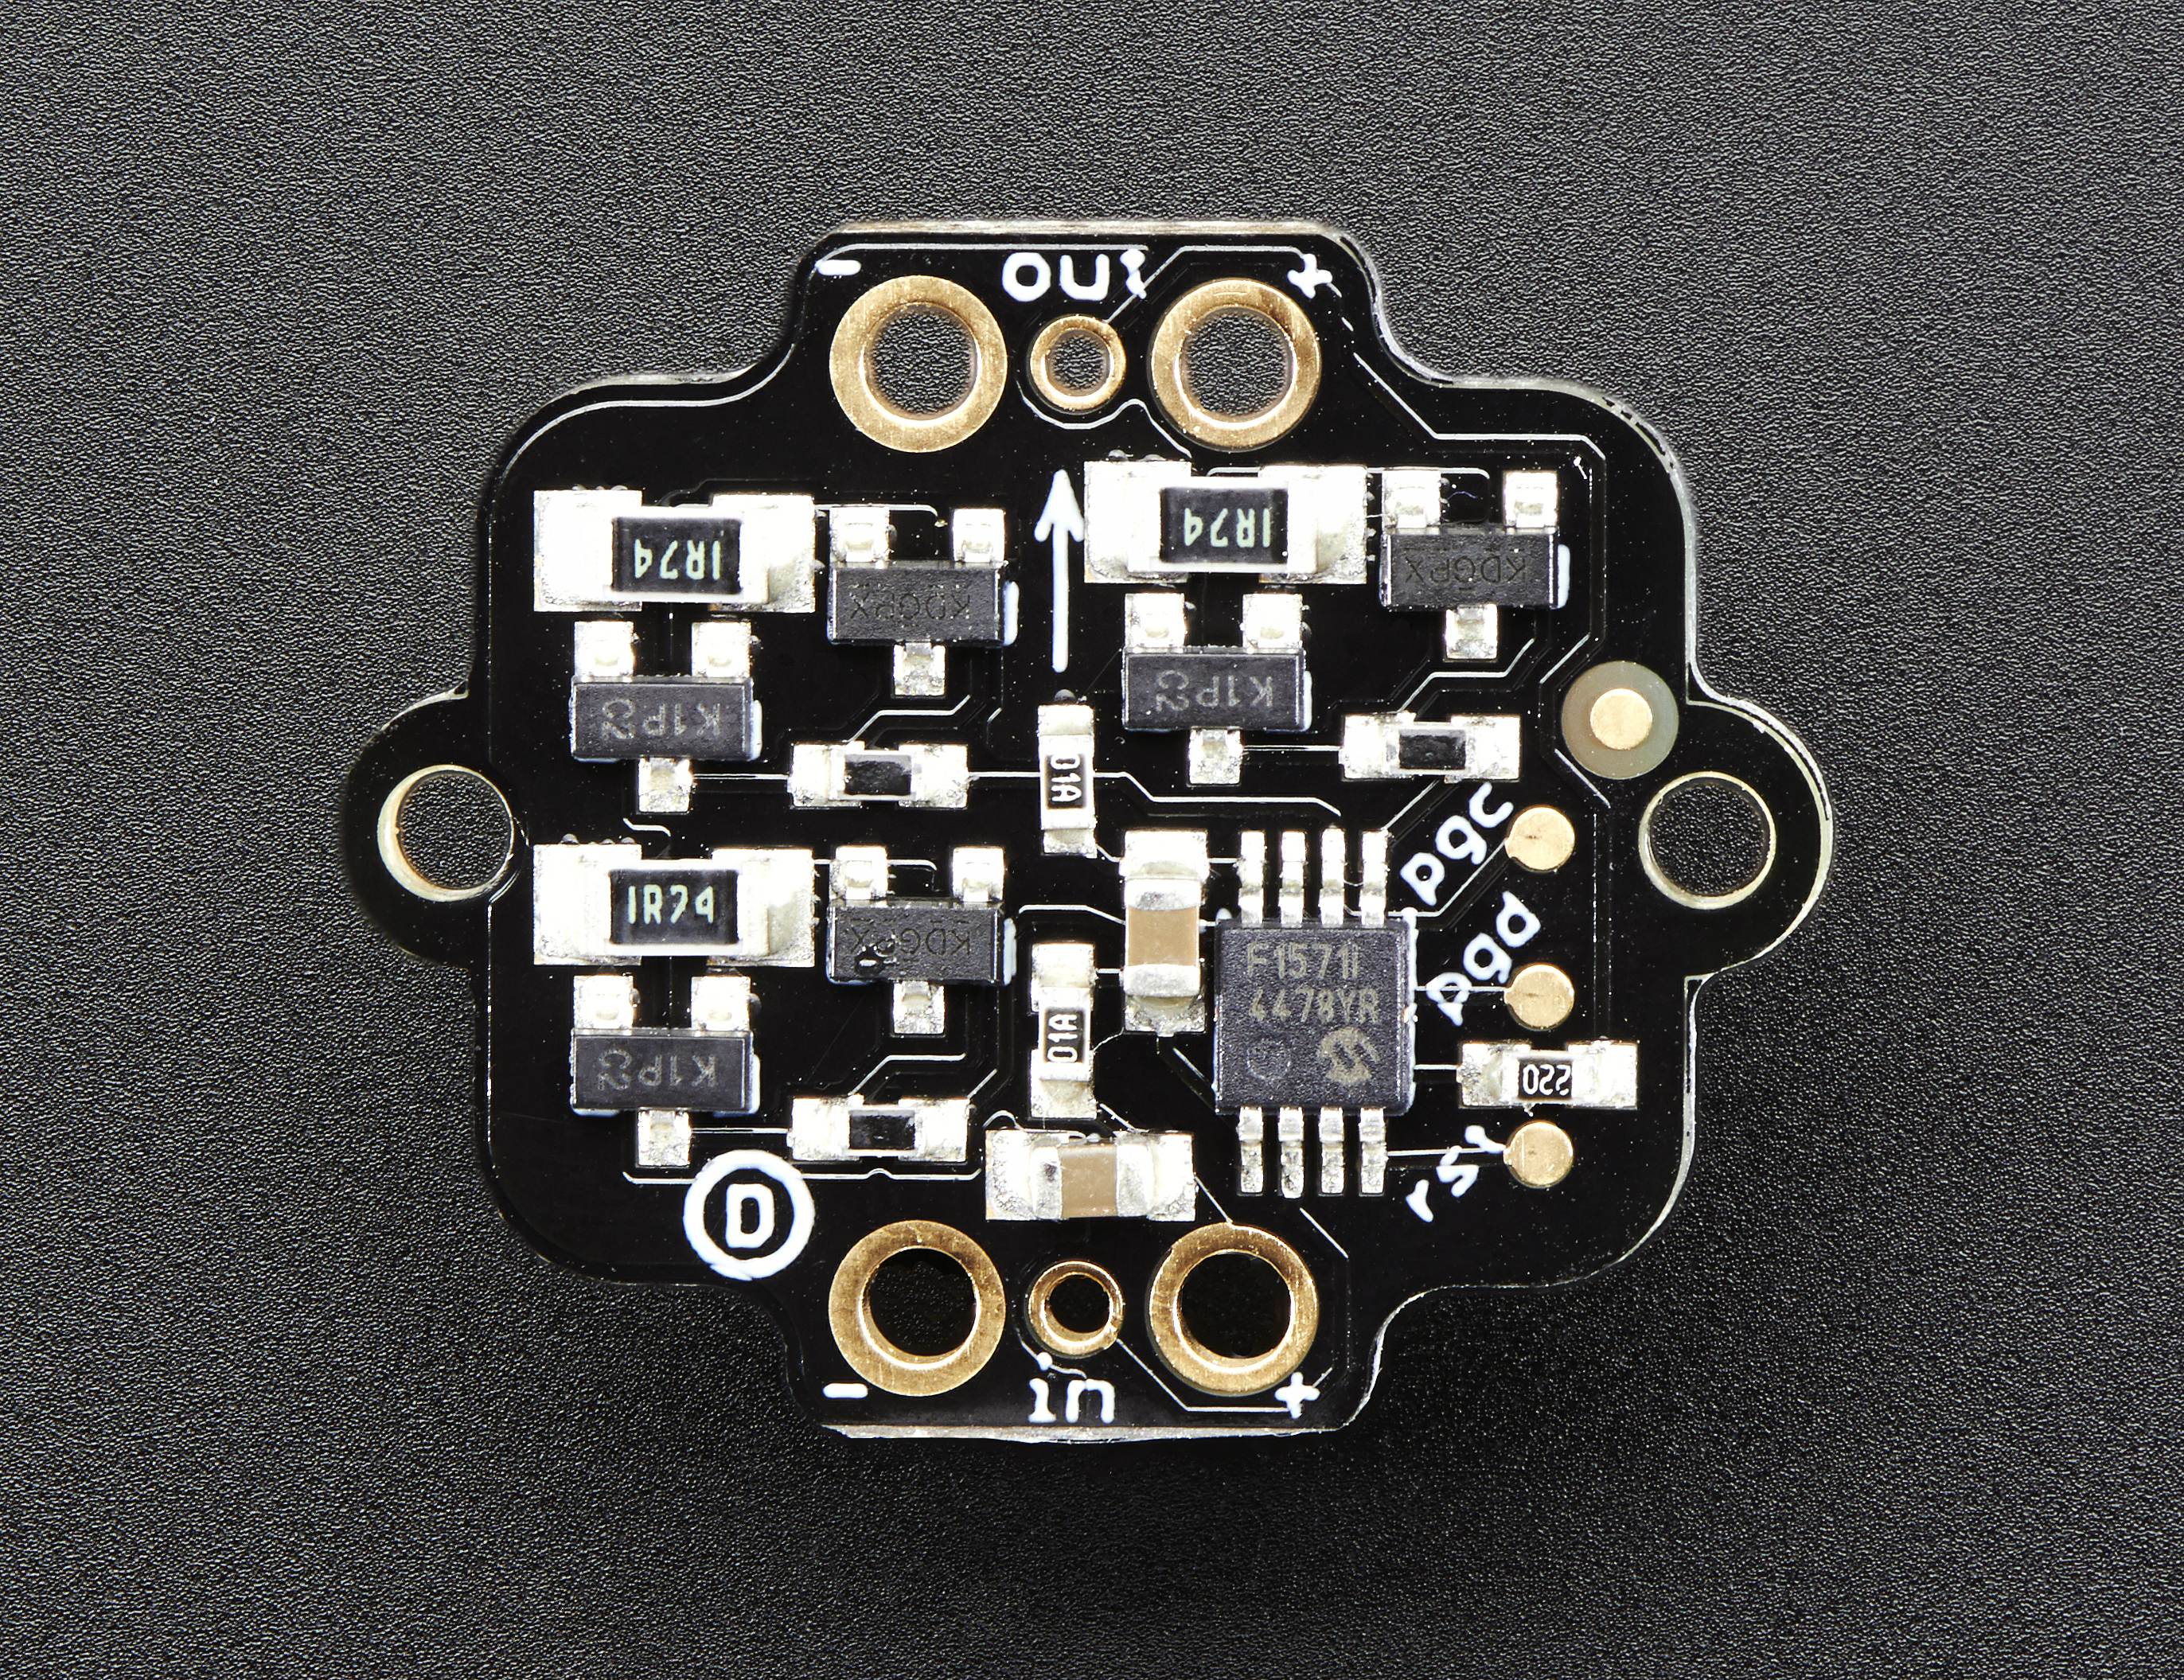 adafruit_products_2741_bottom_ORIG.jpg